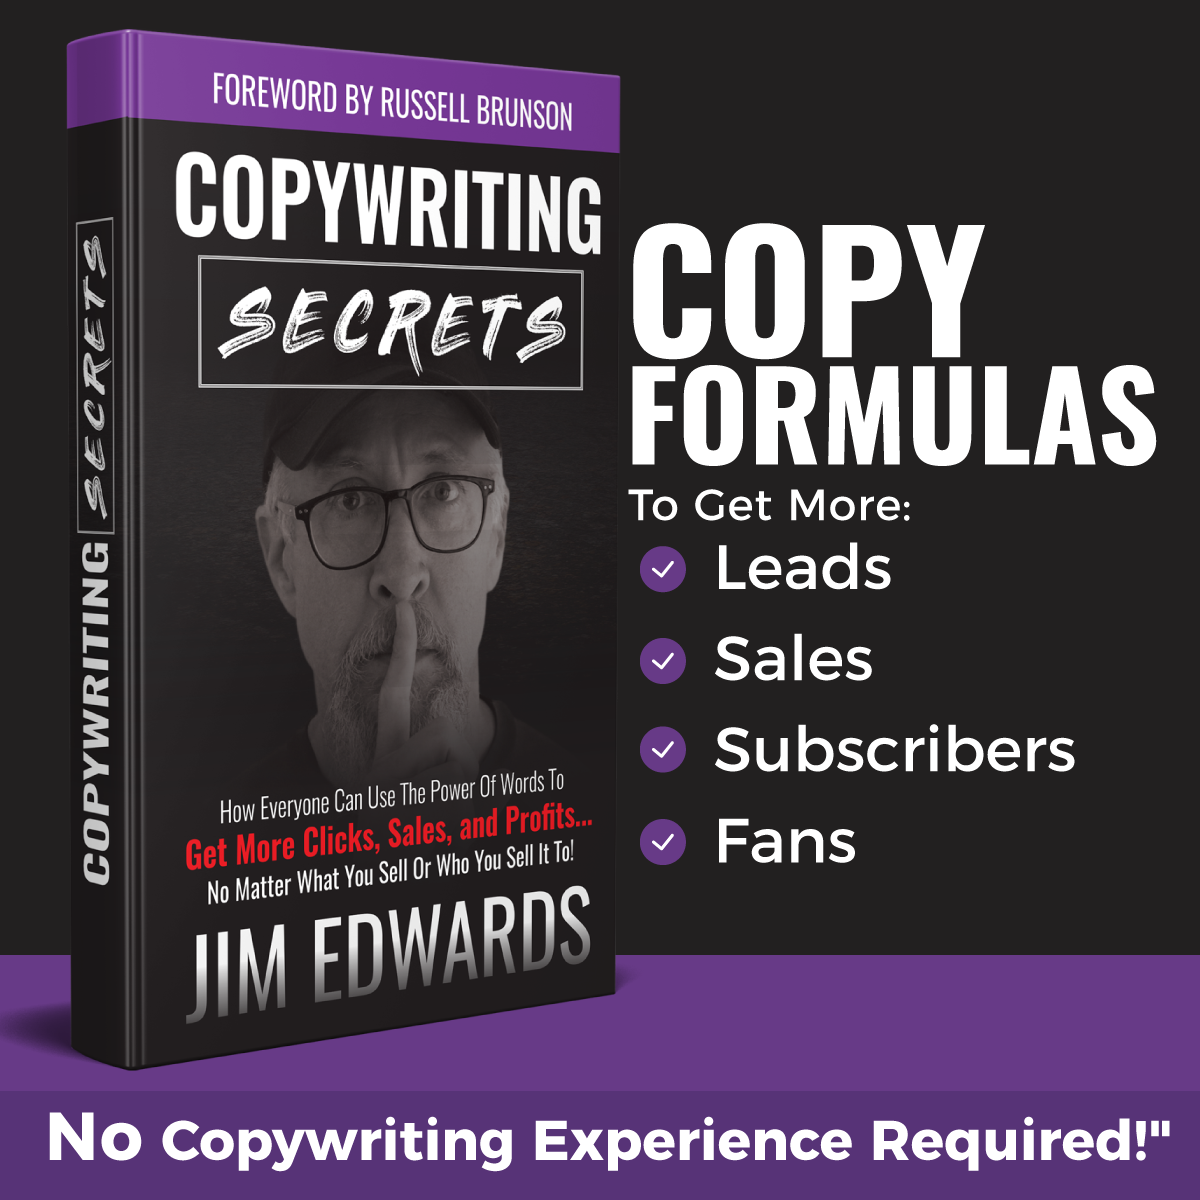 How Much Time To Learn Copywriting